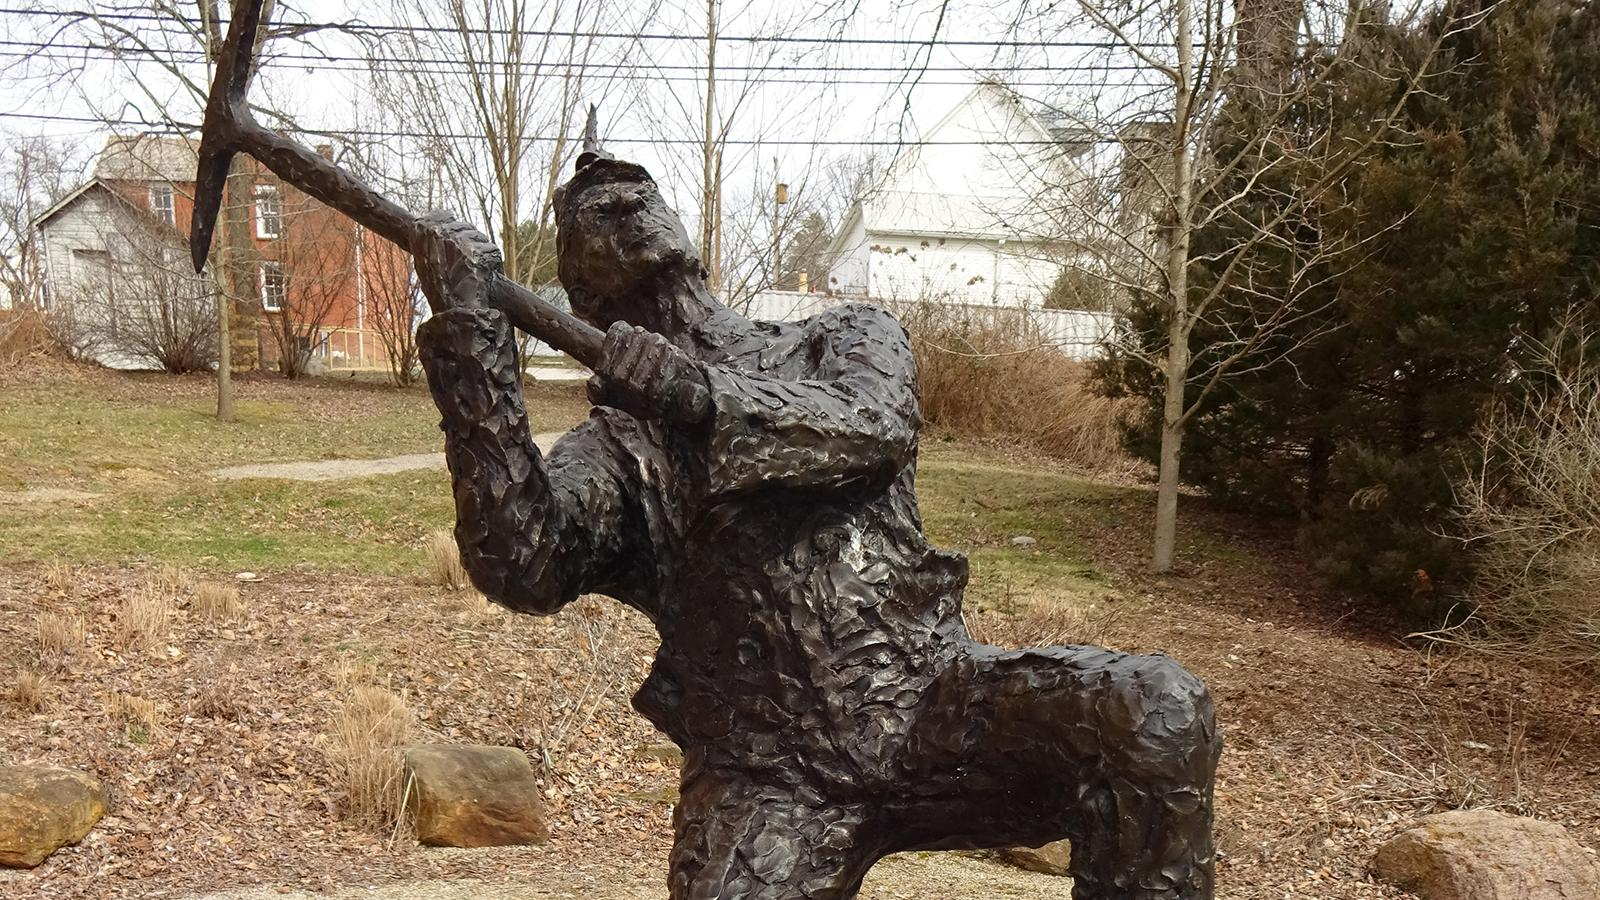 A view of the miner statue in downtown Shawnee, Ohio.